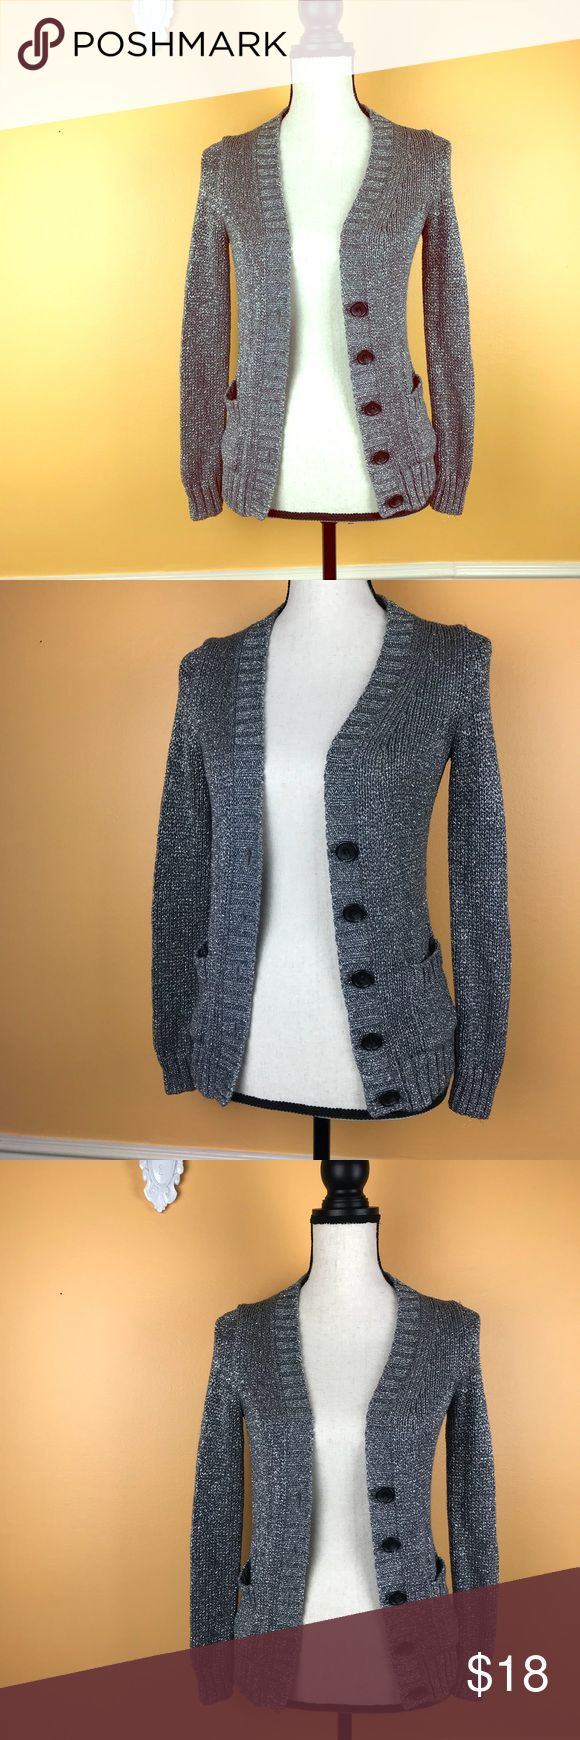 J. Crew metallic silver cardigan Button Down J. Crew sparkly metallic silver cardigan with buttons. Excellent preloved condition. No flaws. Size XS. J. Crew Sweaters Cardigans